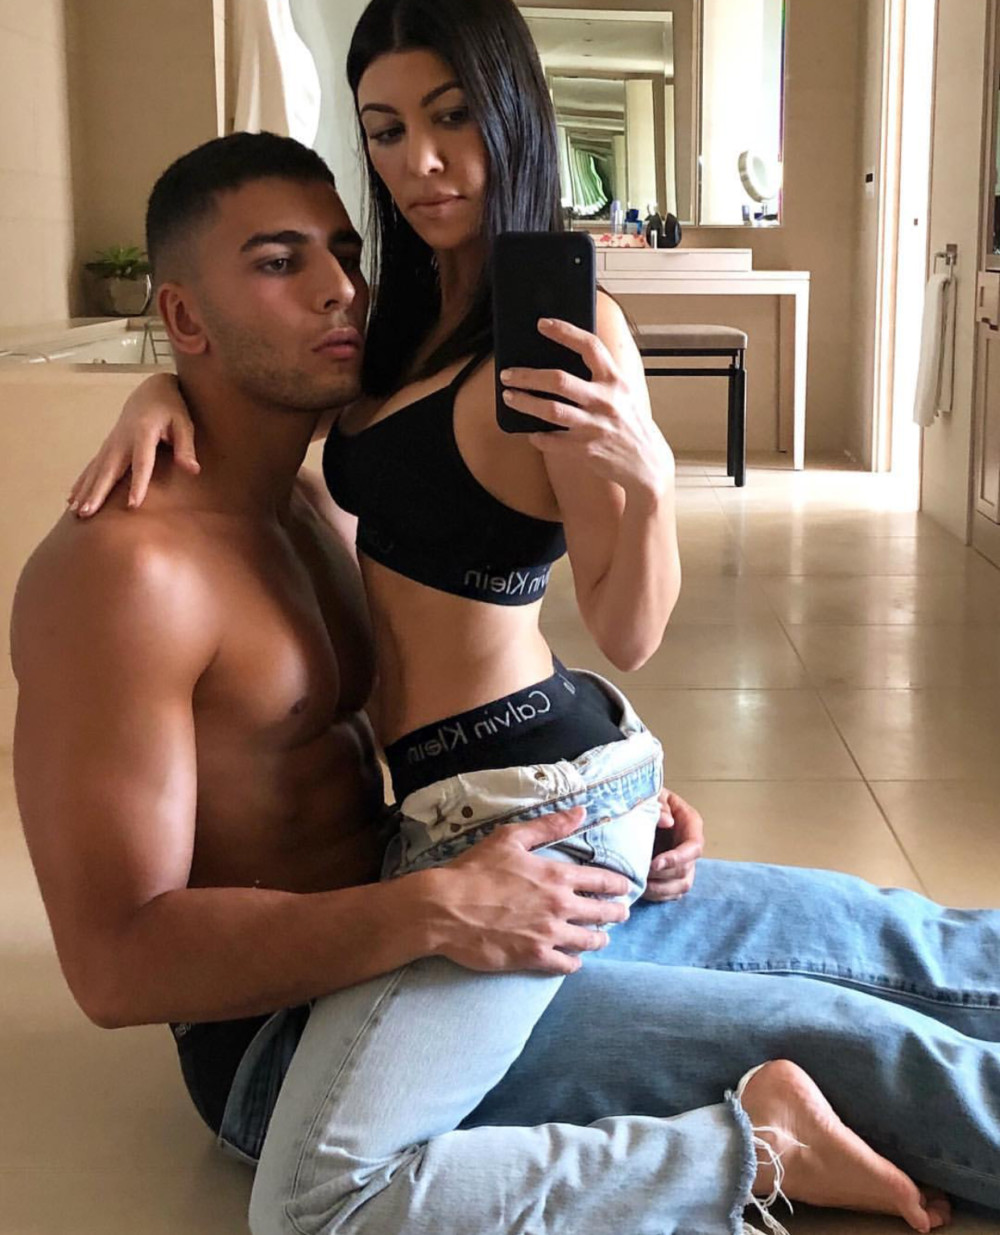 Kourtney Kardashian & Younes Bendjima reportedly end 2-Year Relationship - Image ~ Naijabang